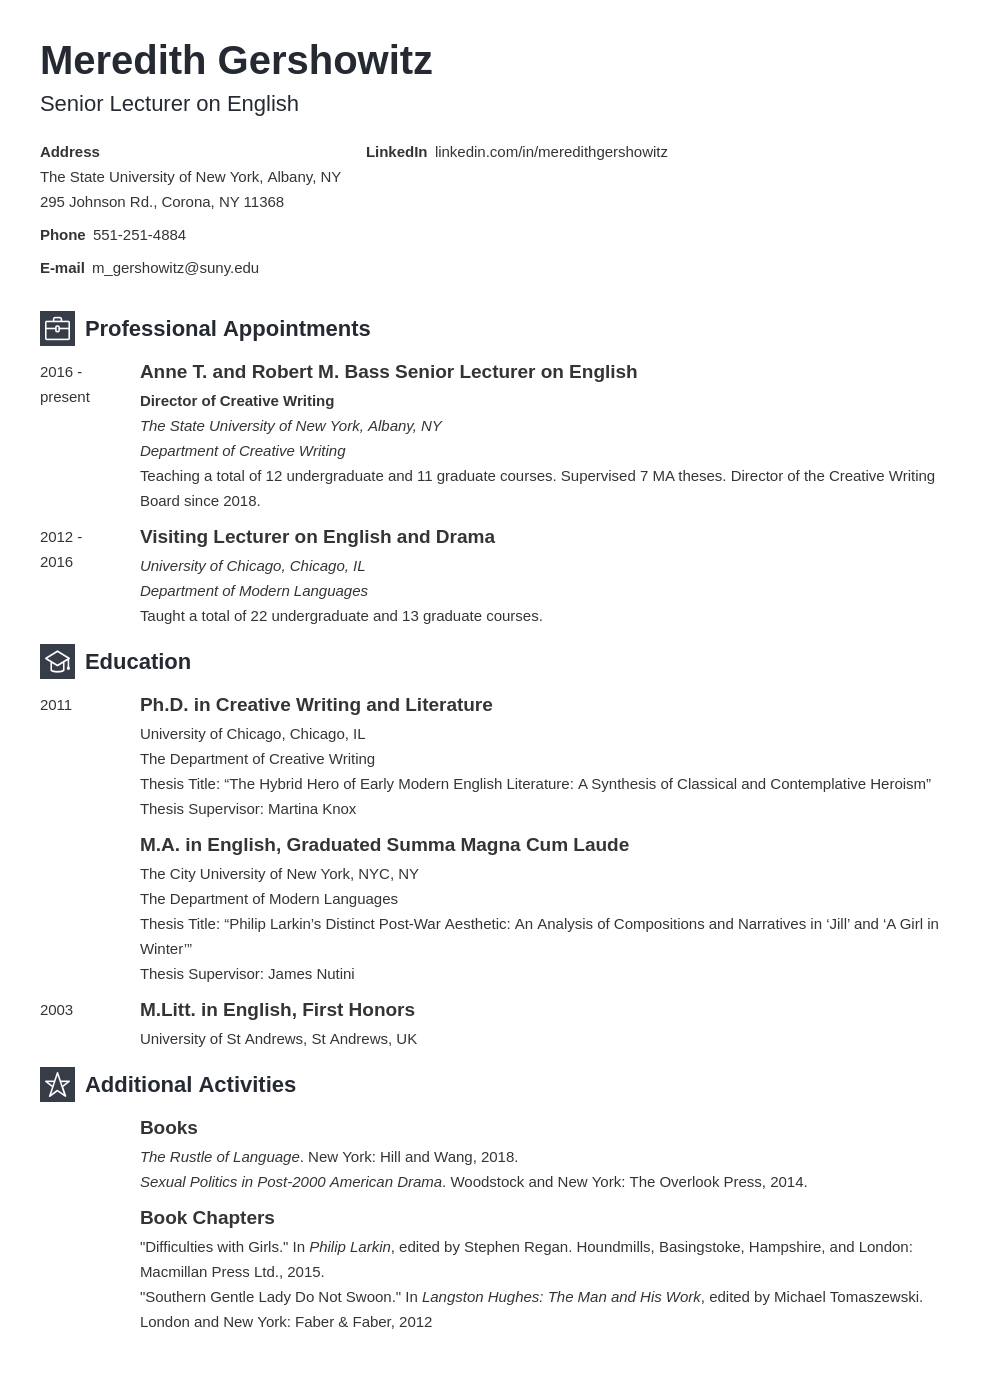 cv academic template newcast